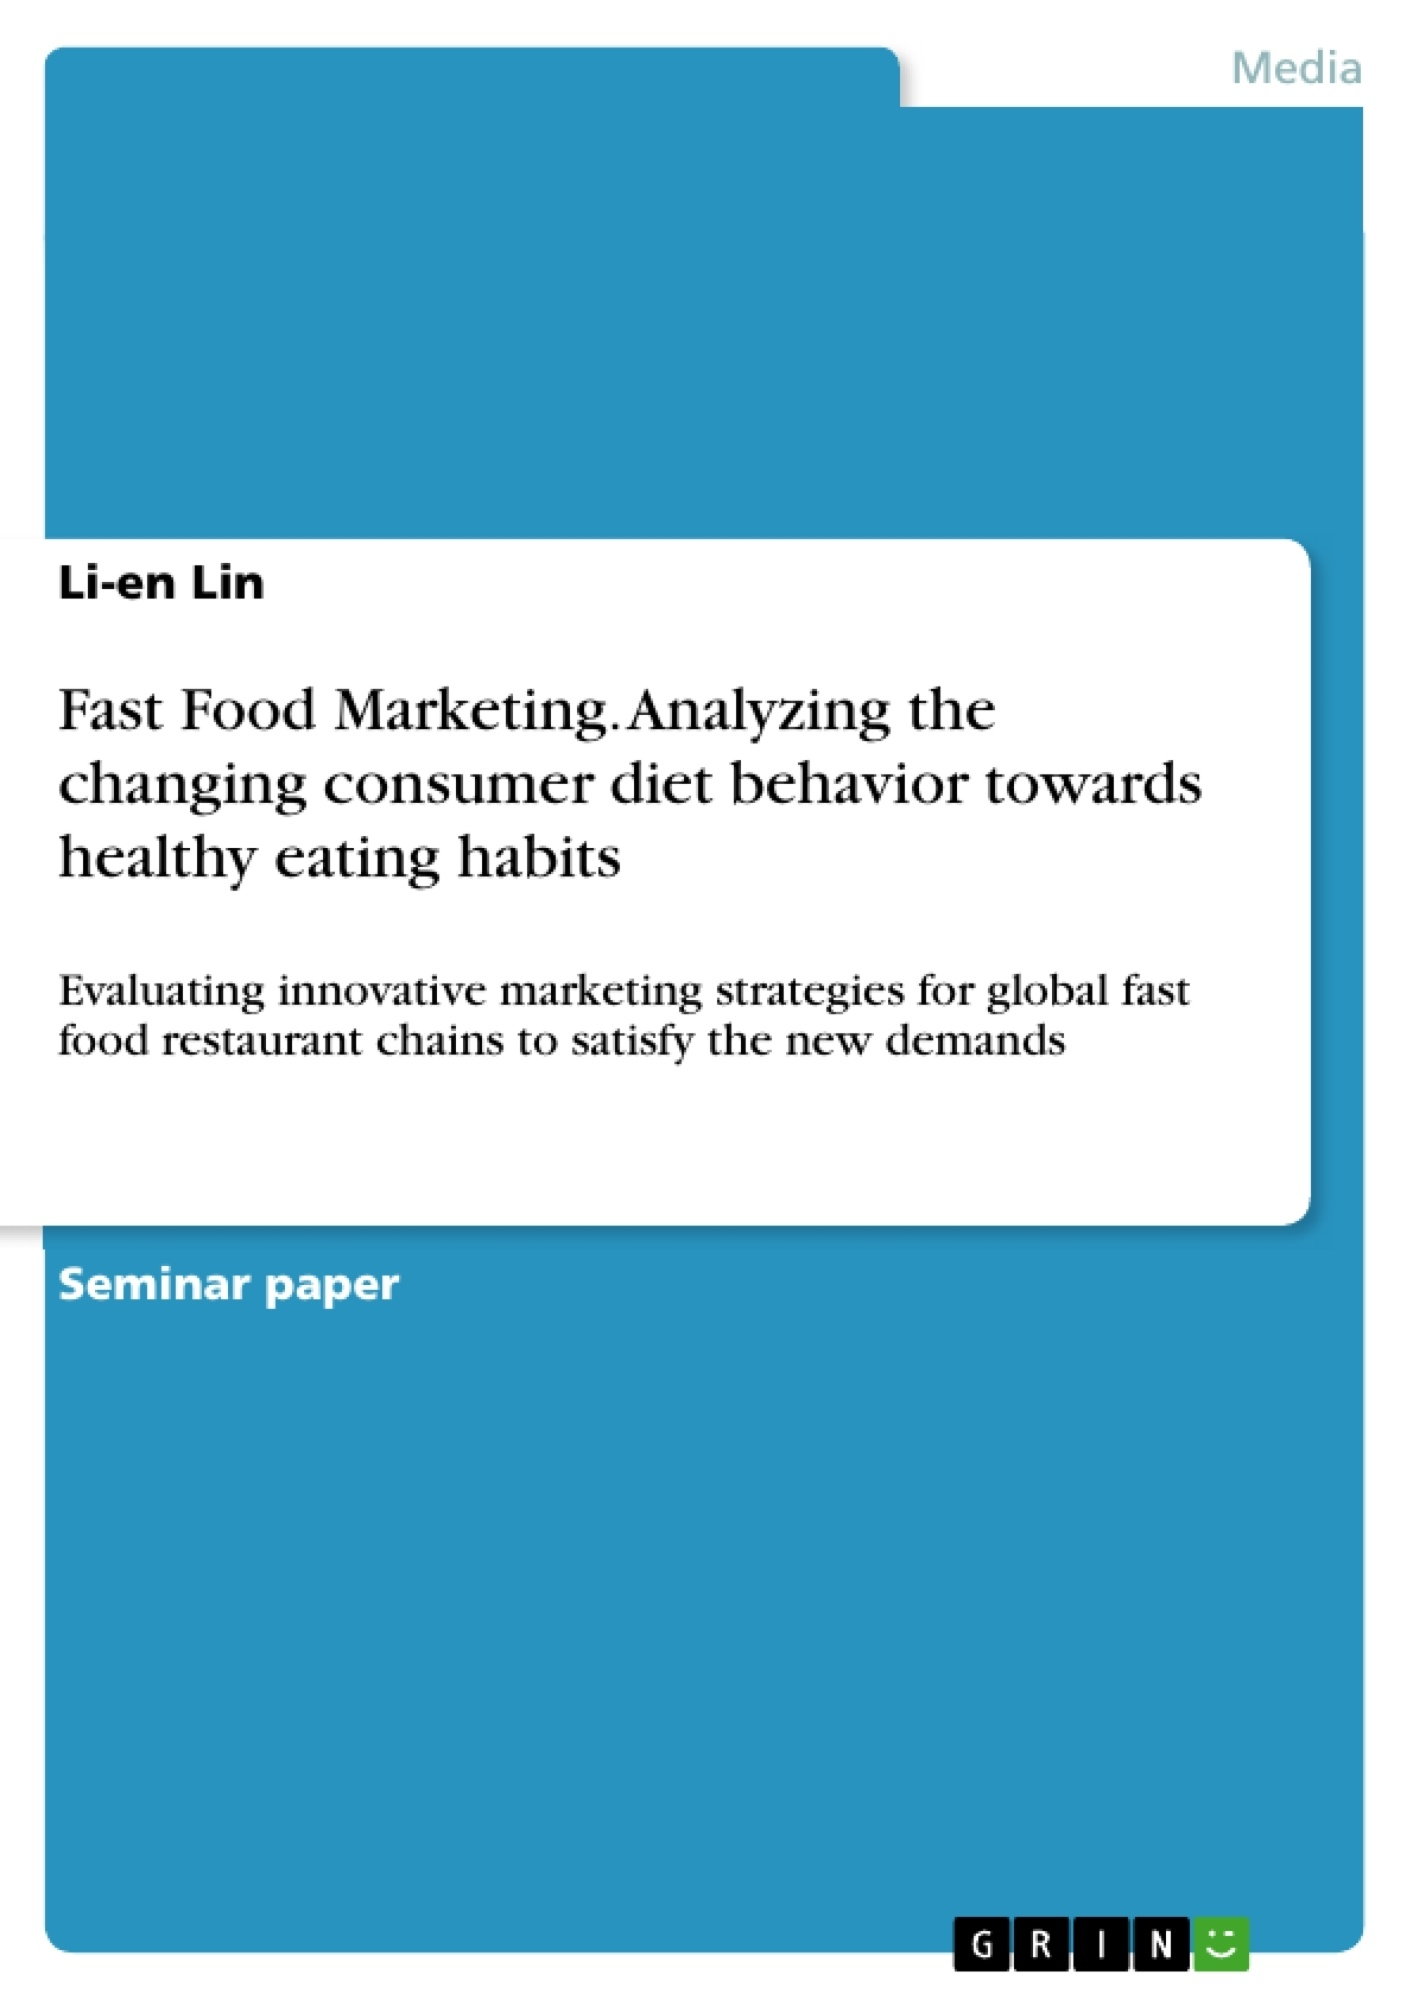 Title: Fast Food Marketing. Analyzing the changing consumer diet behavior towards healthy eating habits